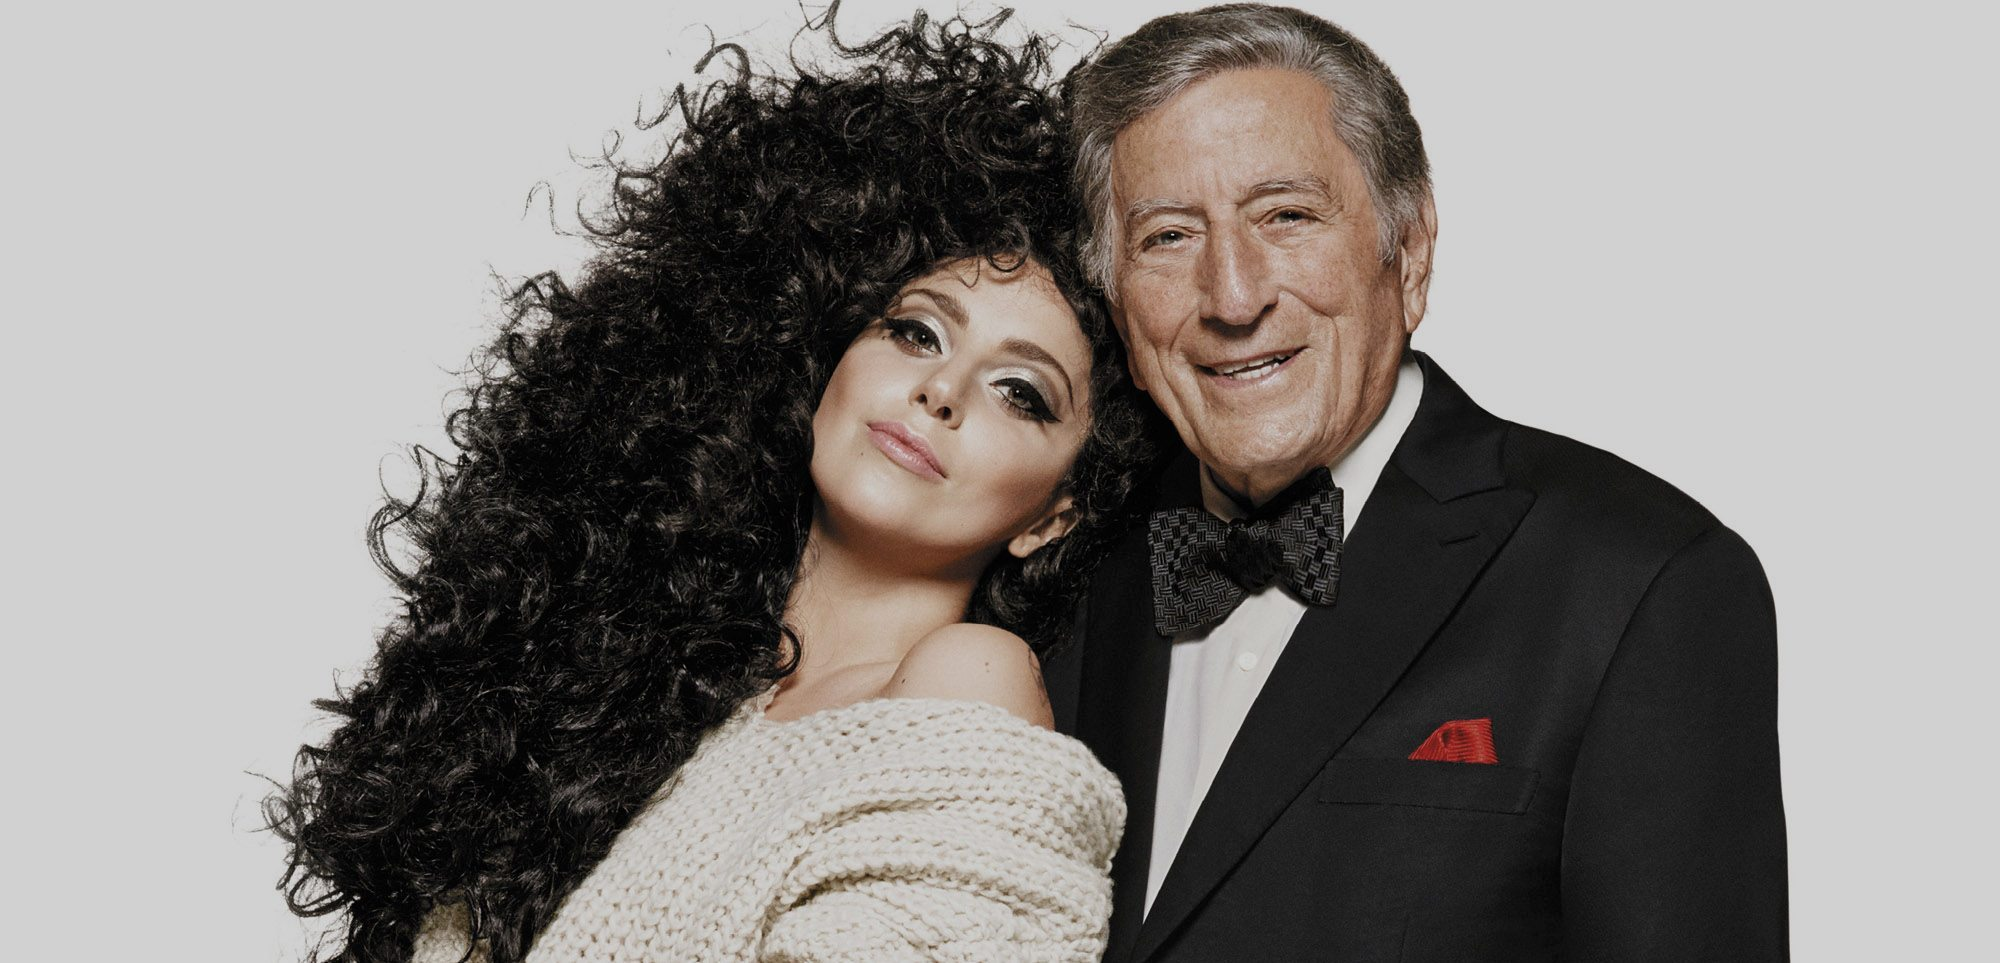 H&M HOLIDAY AD CAMPAIGN WITH LADY GAGA & TONY BENNETT